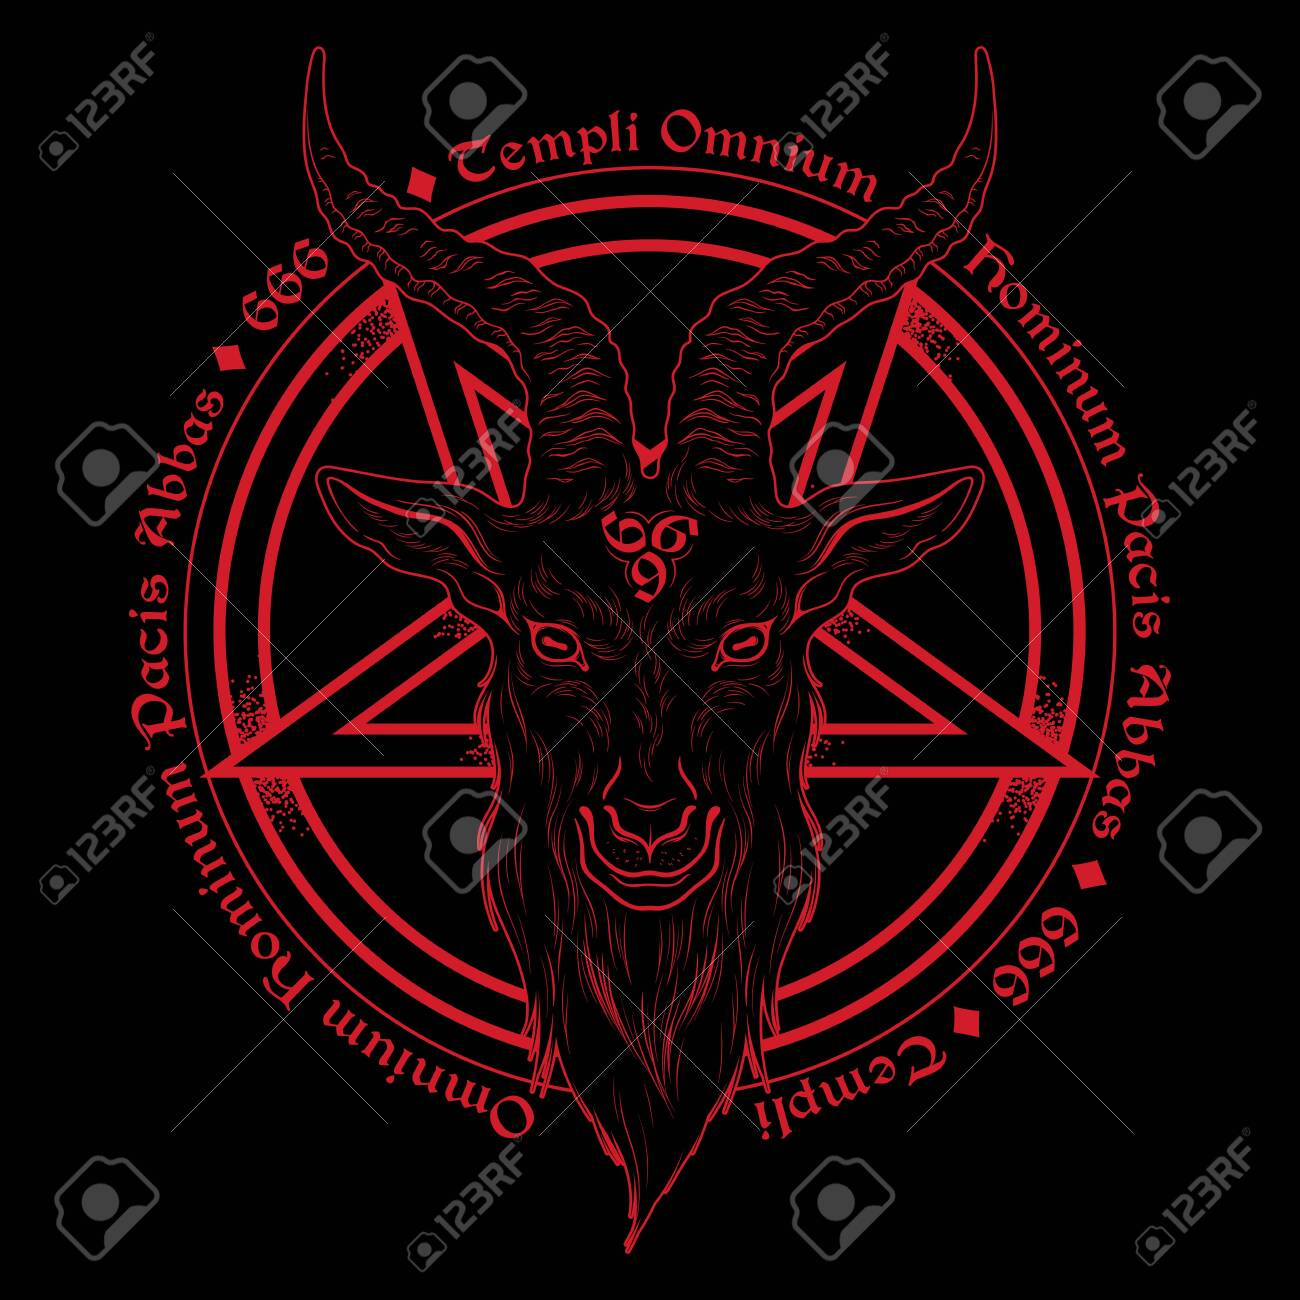 Baphomet Demon Goat Head Hand Drawn Print Or Black Work Flash Royalty Free Cliparts Vectors And Stock Illustration Image 126003986